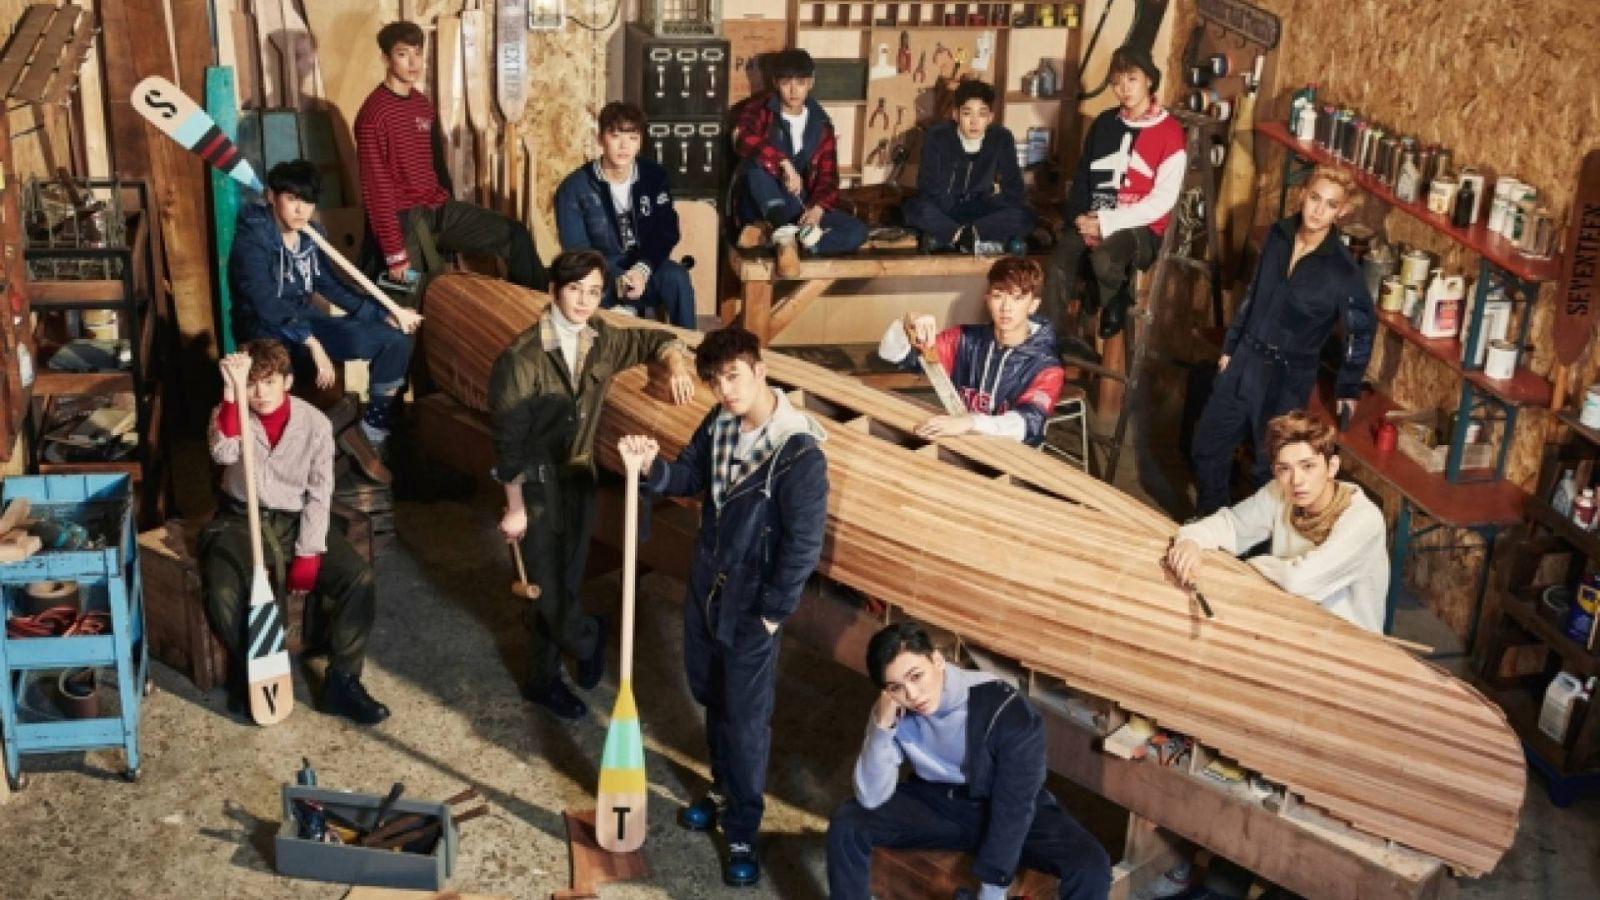 Seventeen © PLEDIS Co.,Ltd. All Rights Reserved.